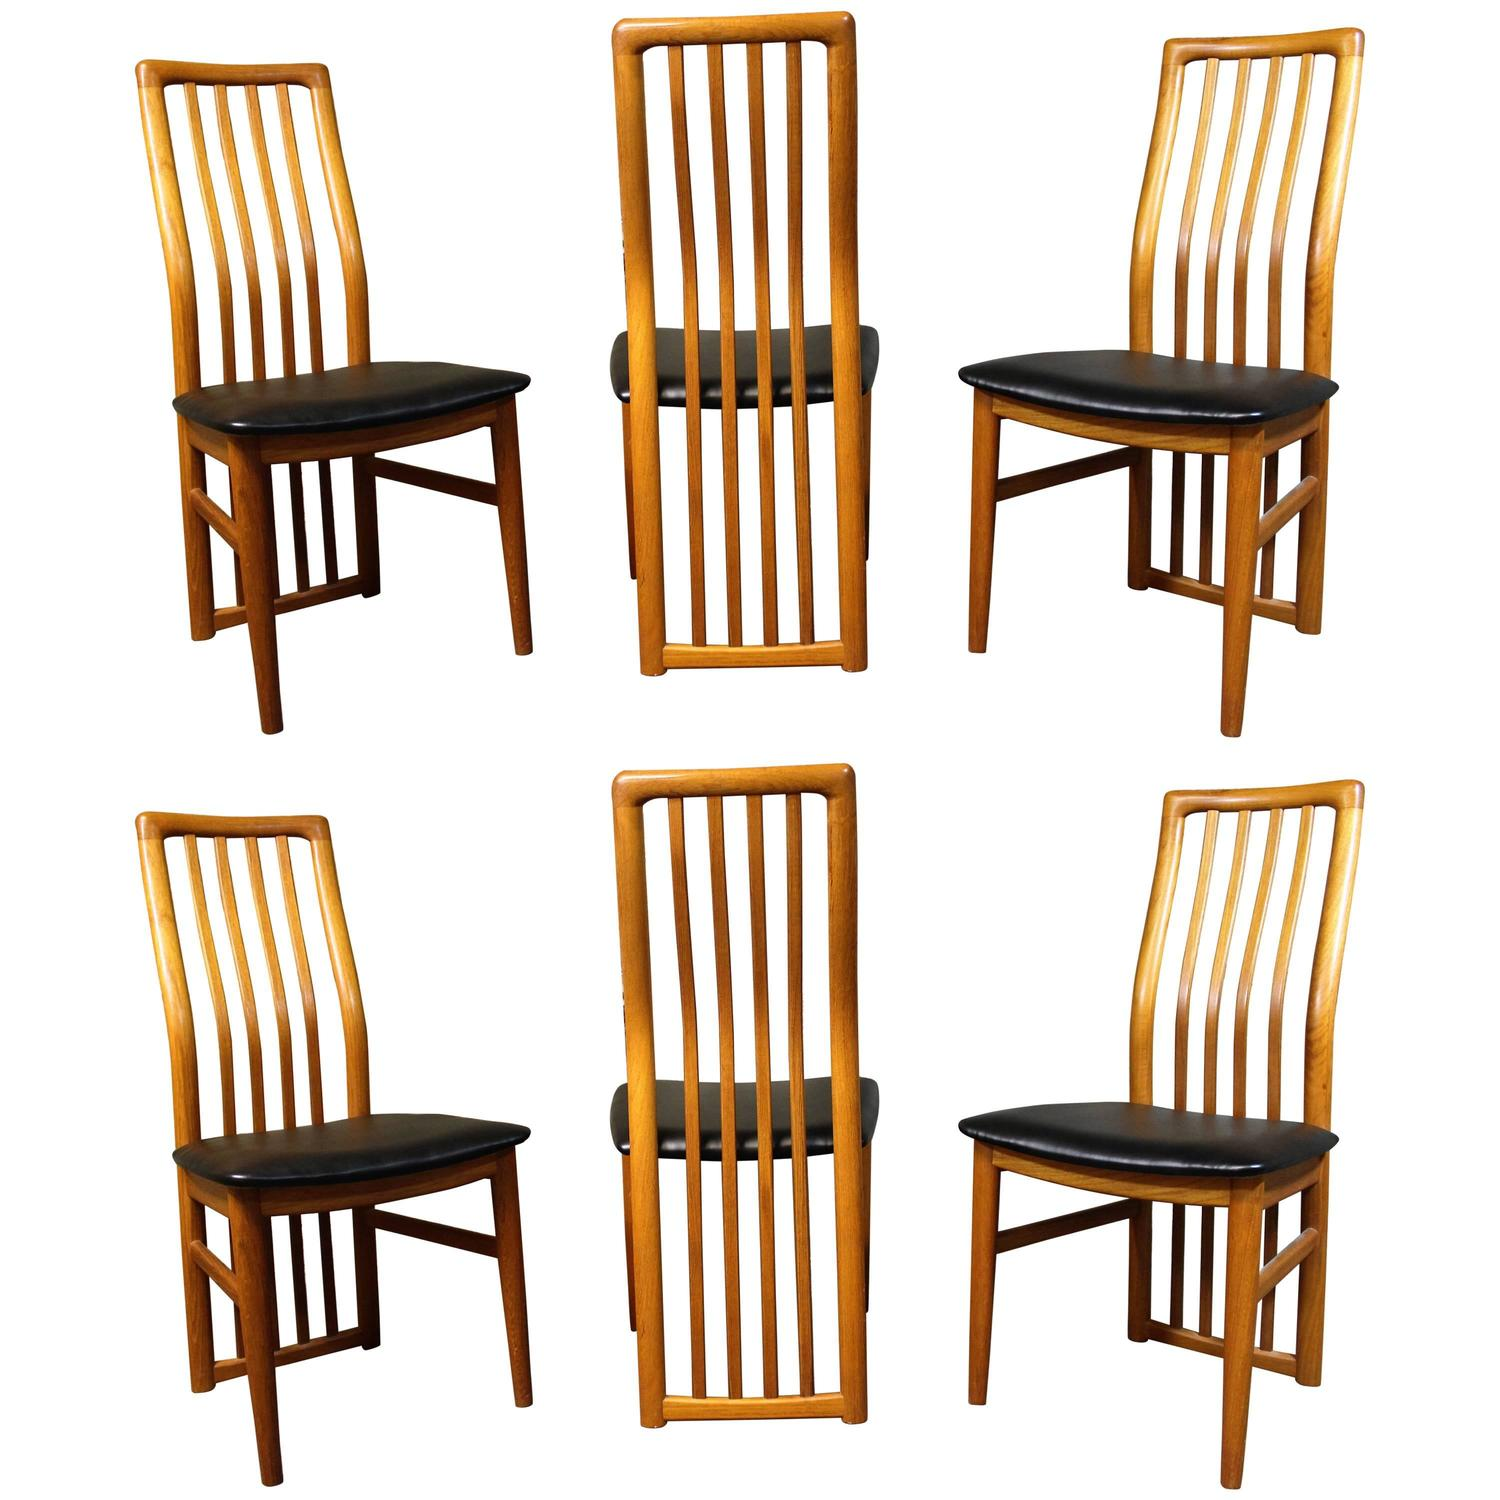 six kai kristiansen teak dining room chairs for schou andersen danish